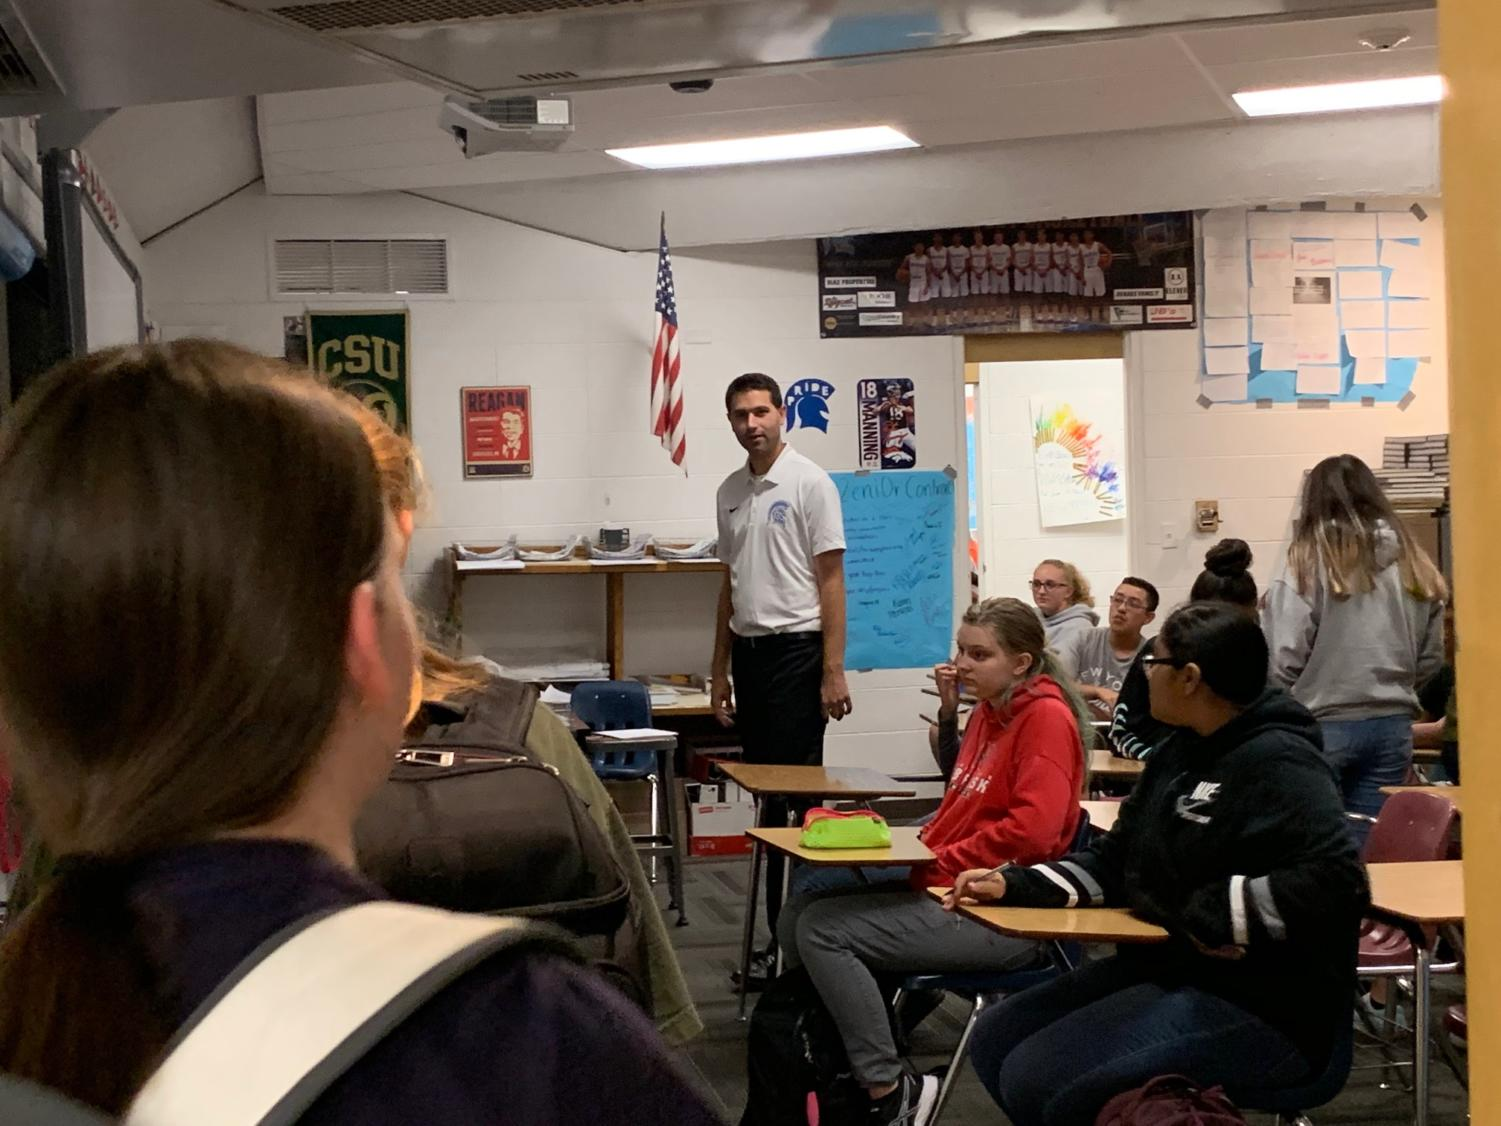 Mr. Stephen Paulson greets students as they walk into his classroom on Thursday.